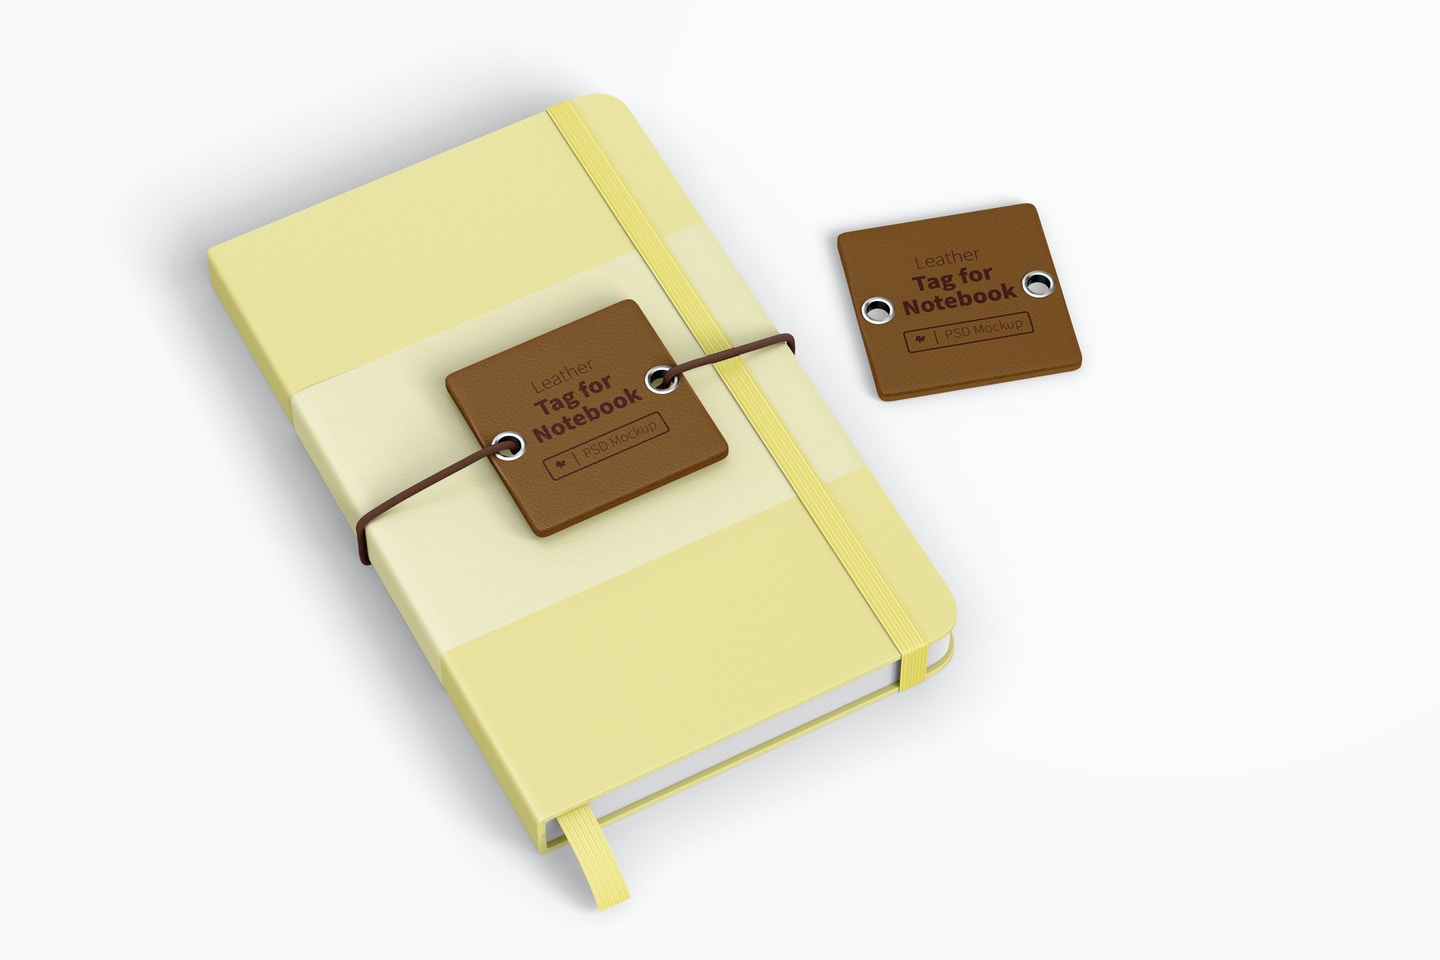 Leather Tag For Notebook Mockup